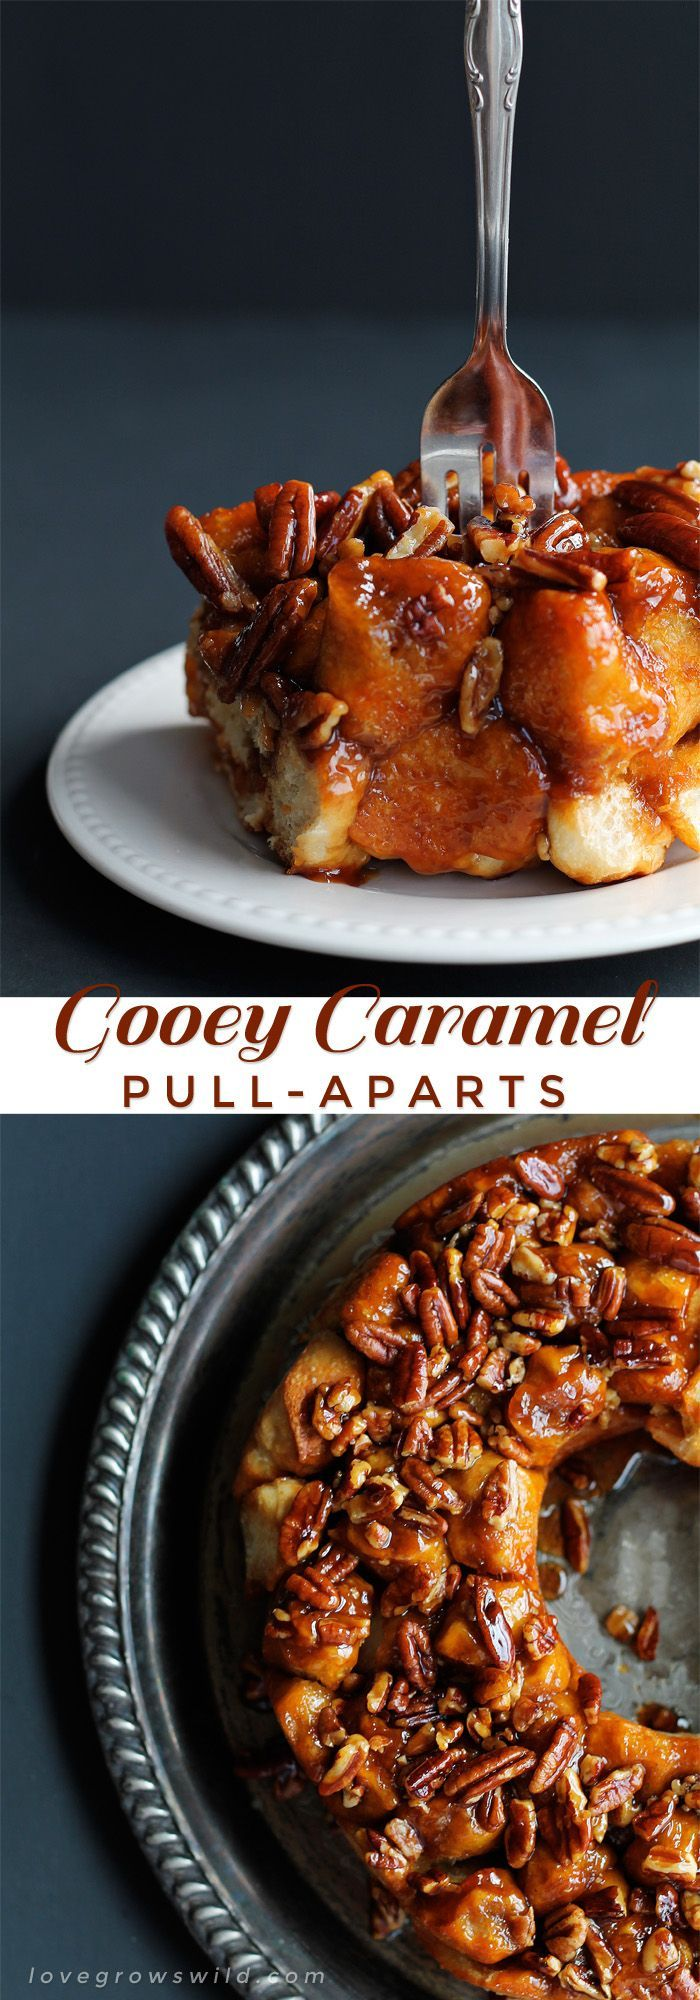 Gooey Caramel Pull-Aparts - only 5 ingredients needed for this delicious, decadent treat! Serve warm out of the oven for breakfast OR dessert. | LoveGrowsWild.com